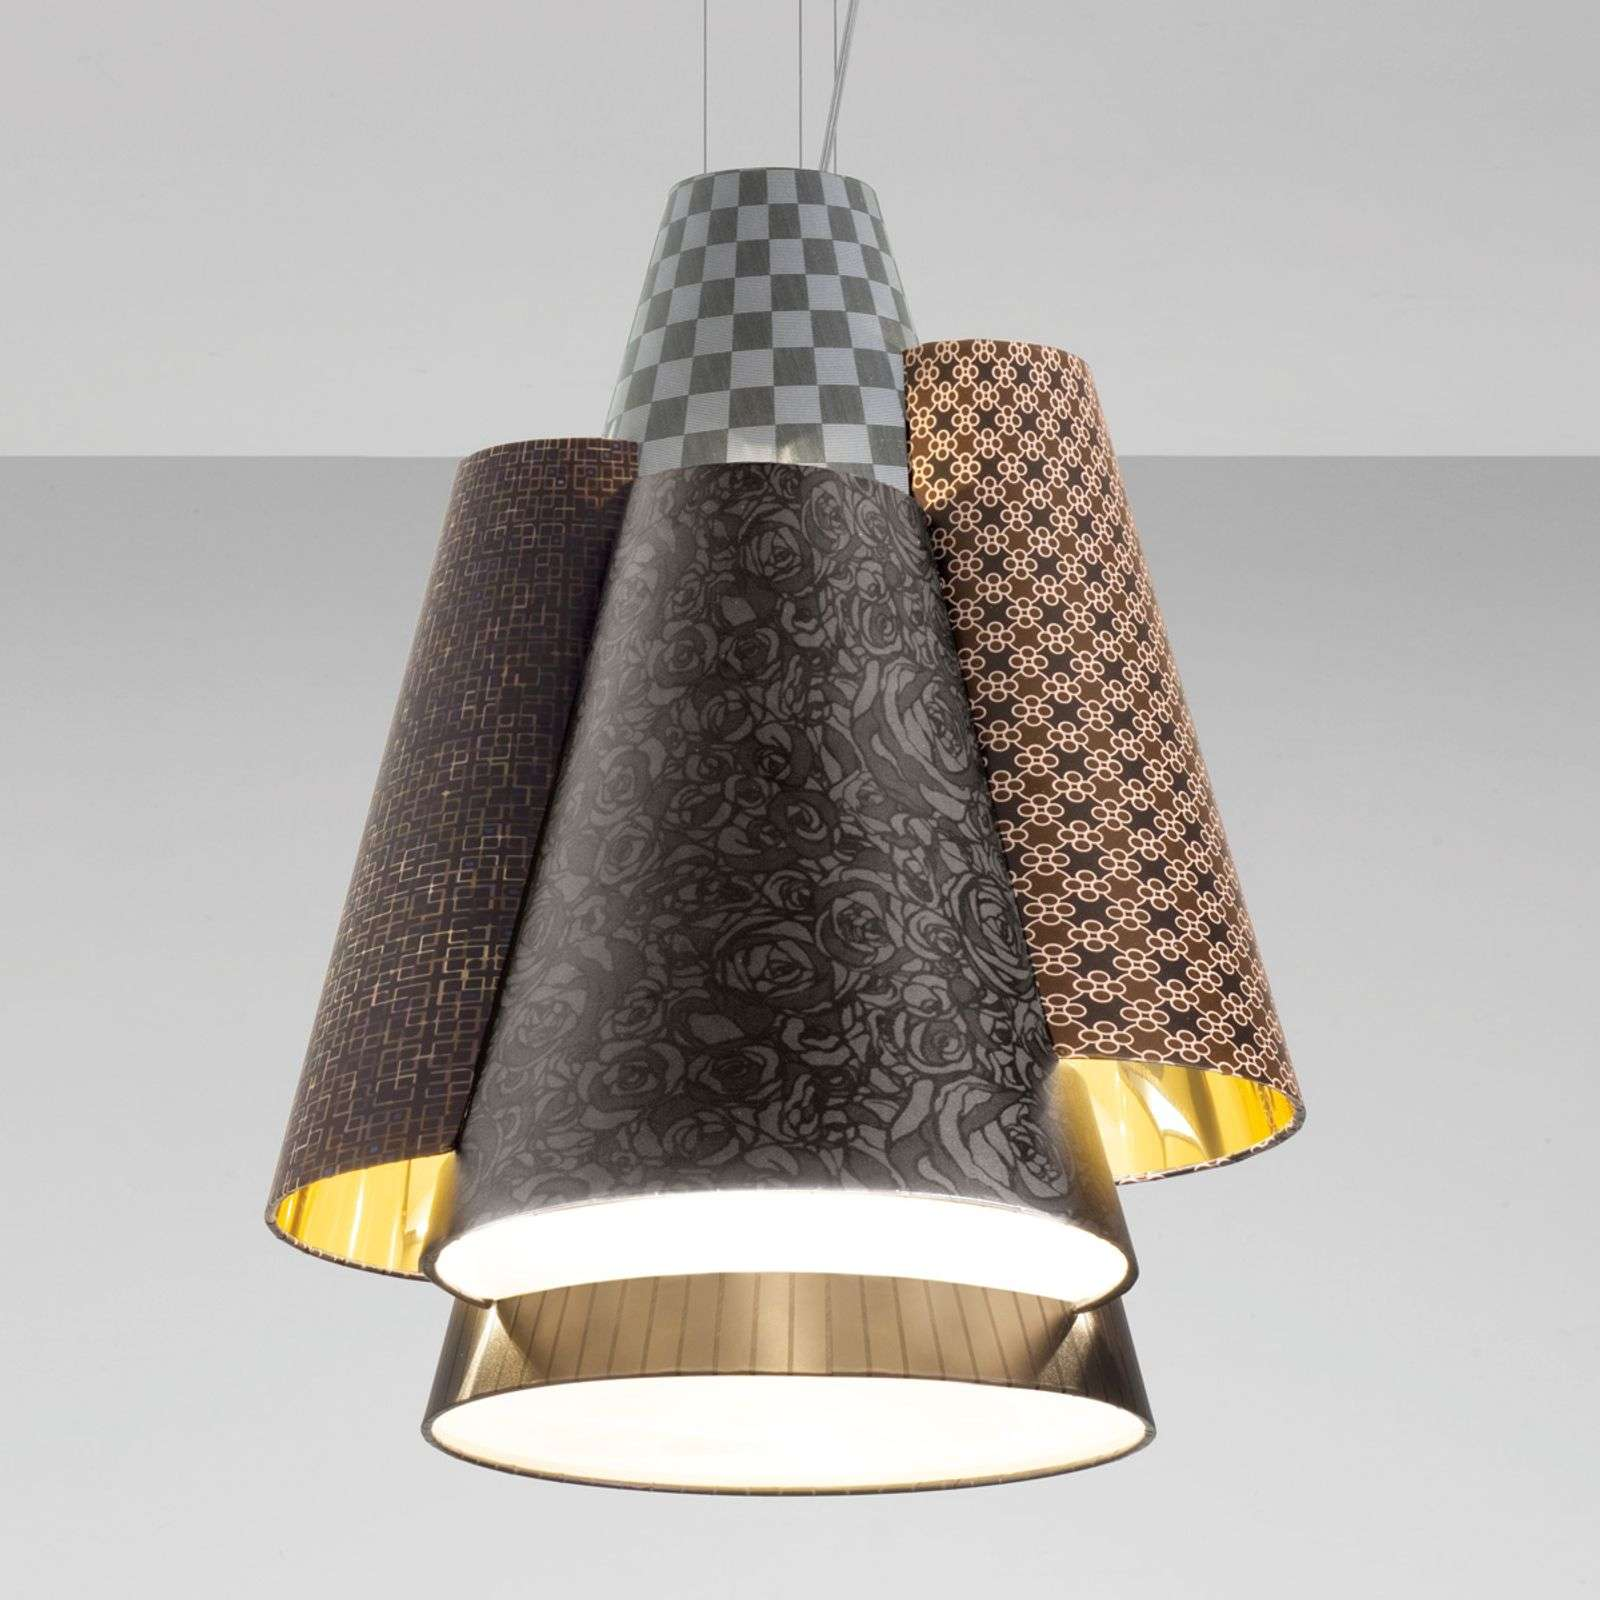 Axolight Melting Pot 60 hanglamp in bruin-goud